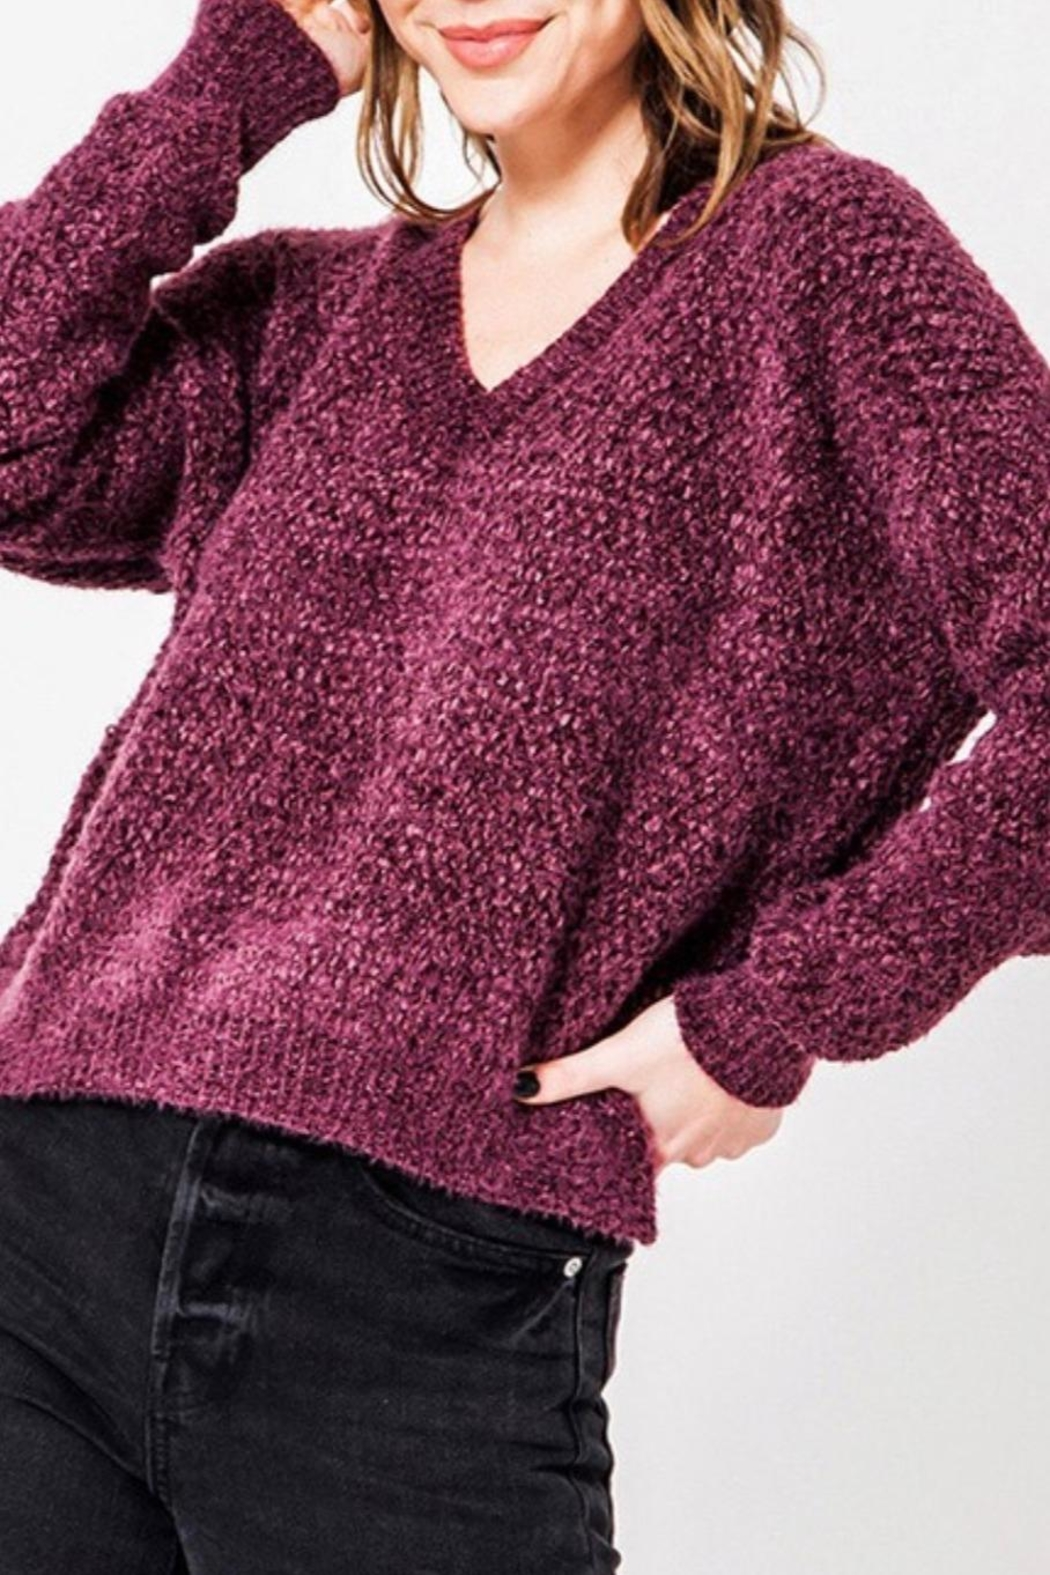 HYFVE Fuzzy Chenille Sweater - Main Image